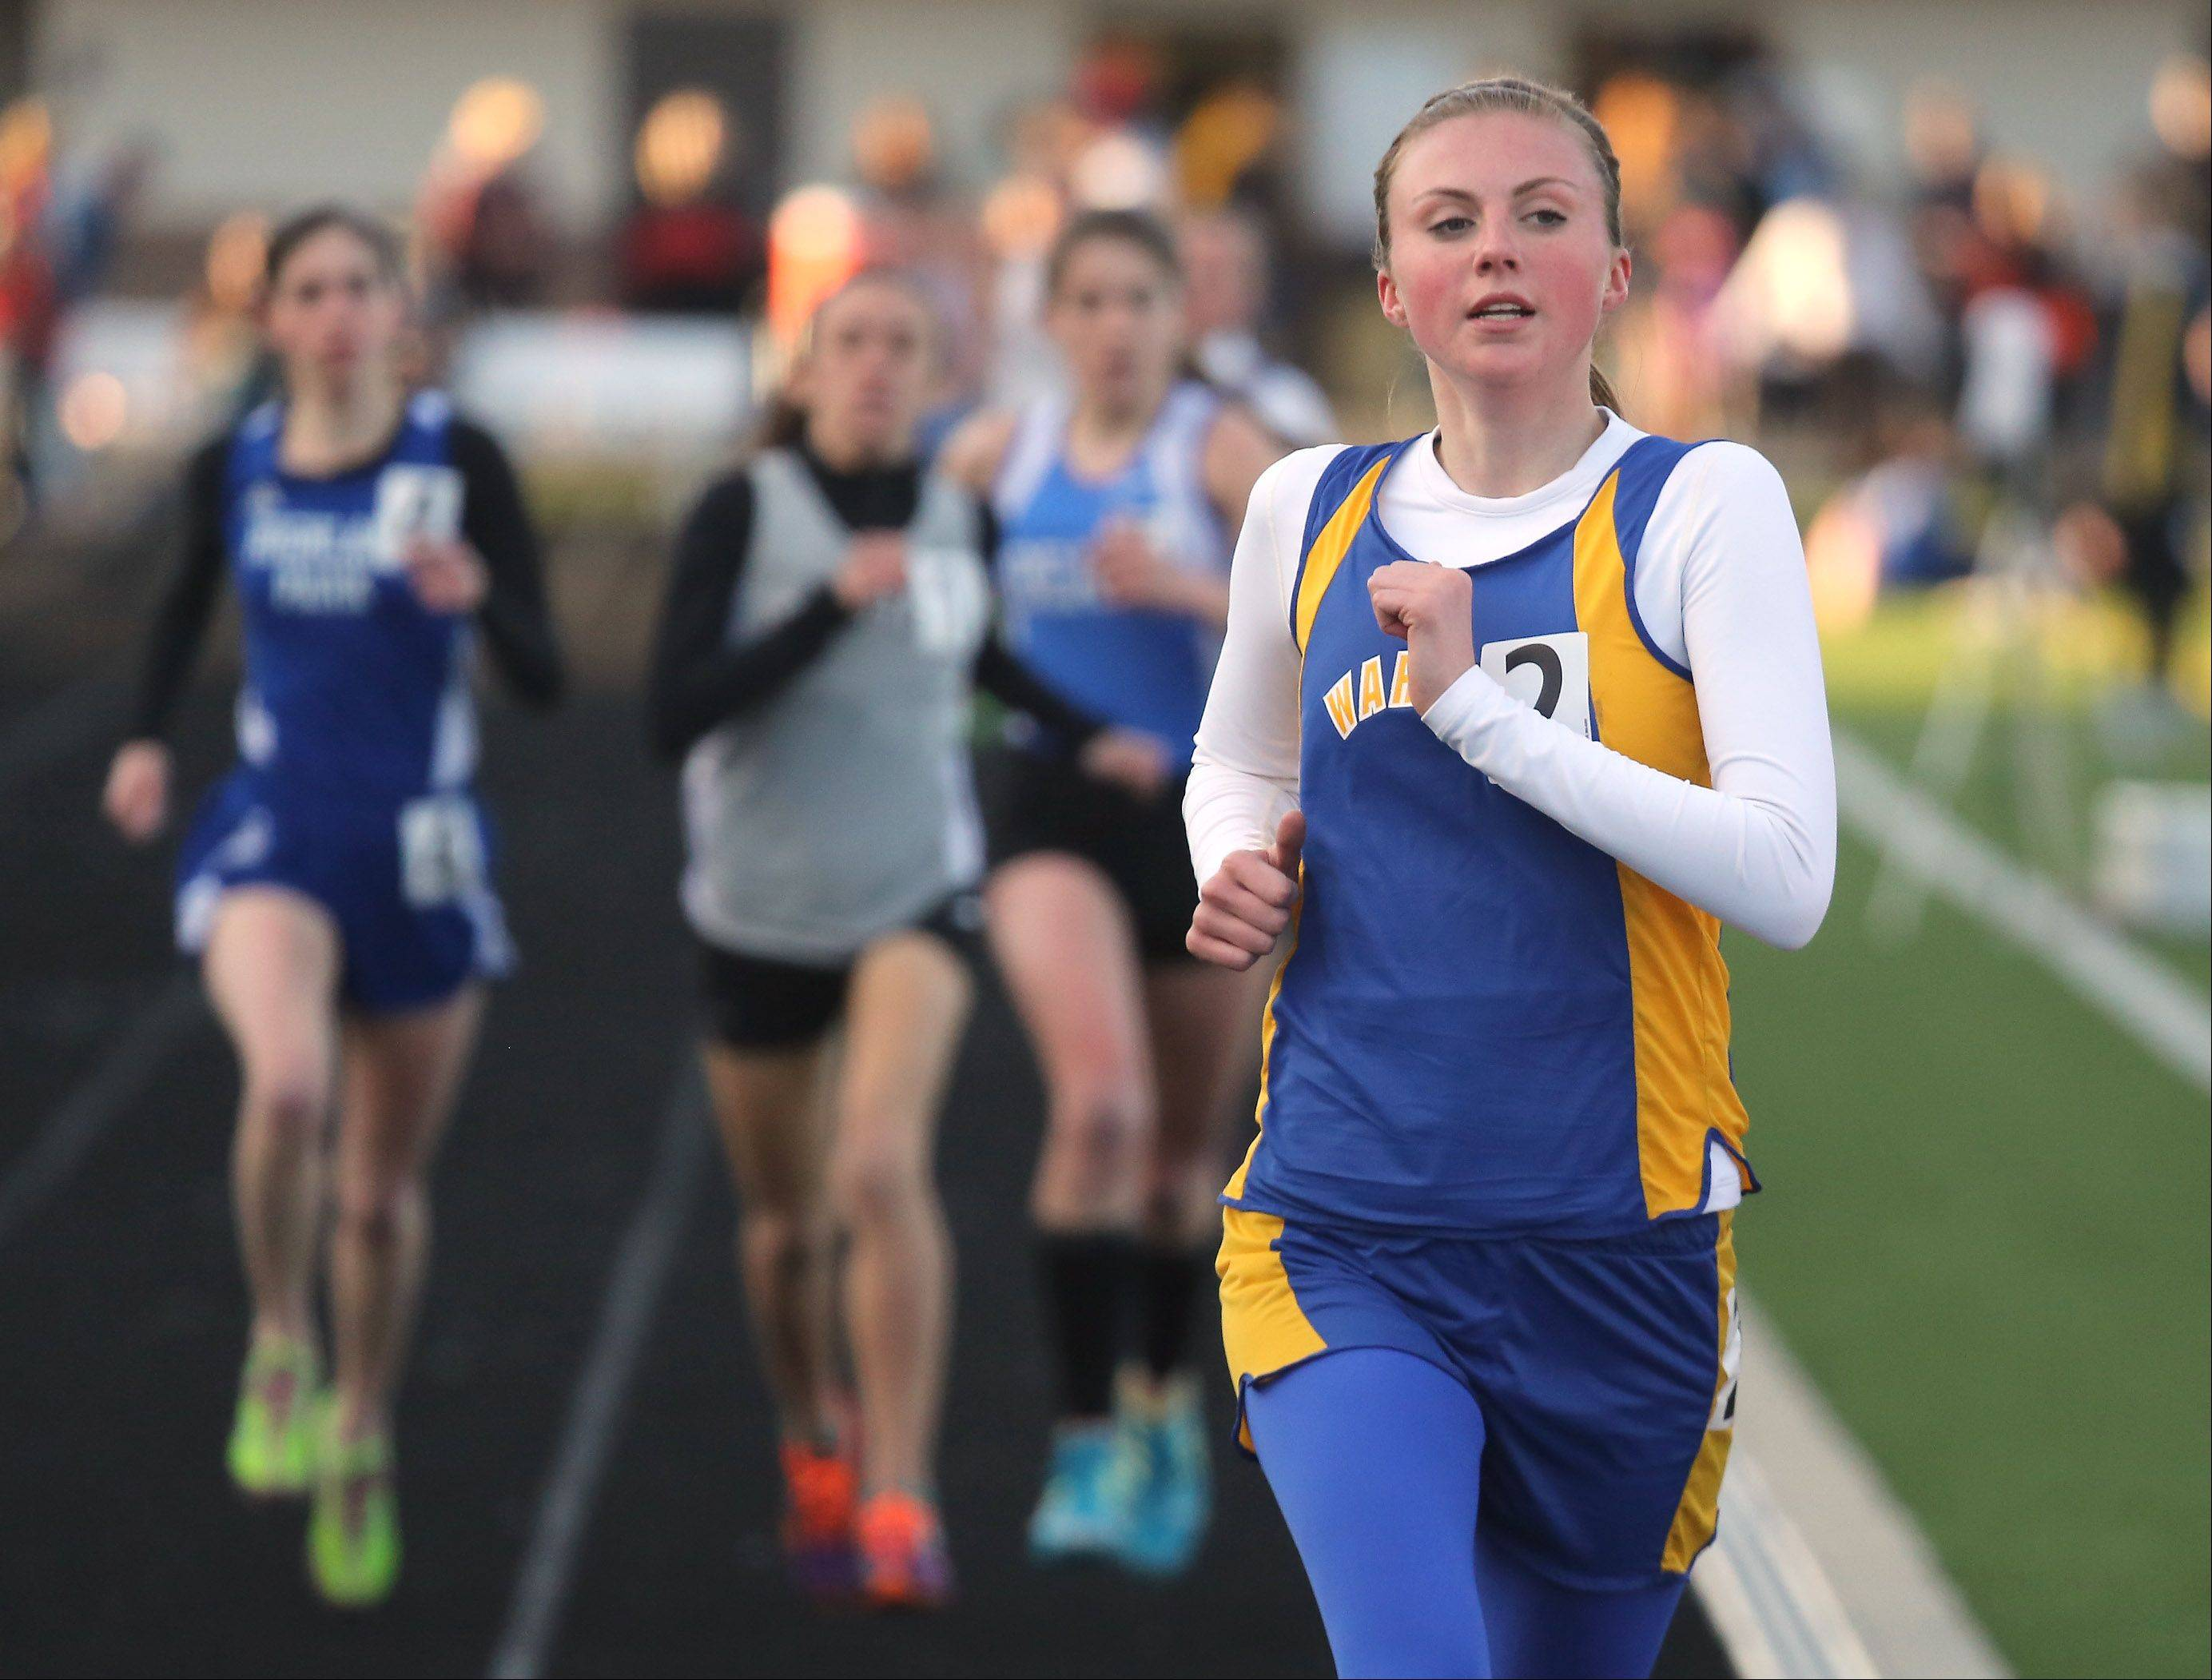 Warren's Meg Tully leads the 3200-meter run for much of the race before ending up second during the Lake County girls track meet Thursday at Grayslake North High School.